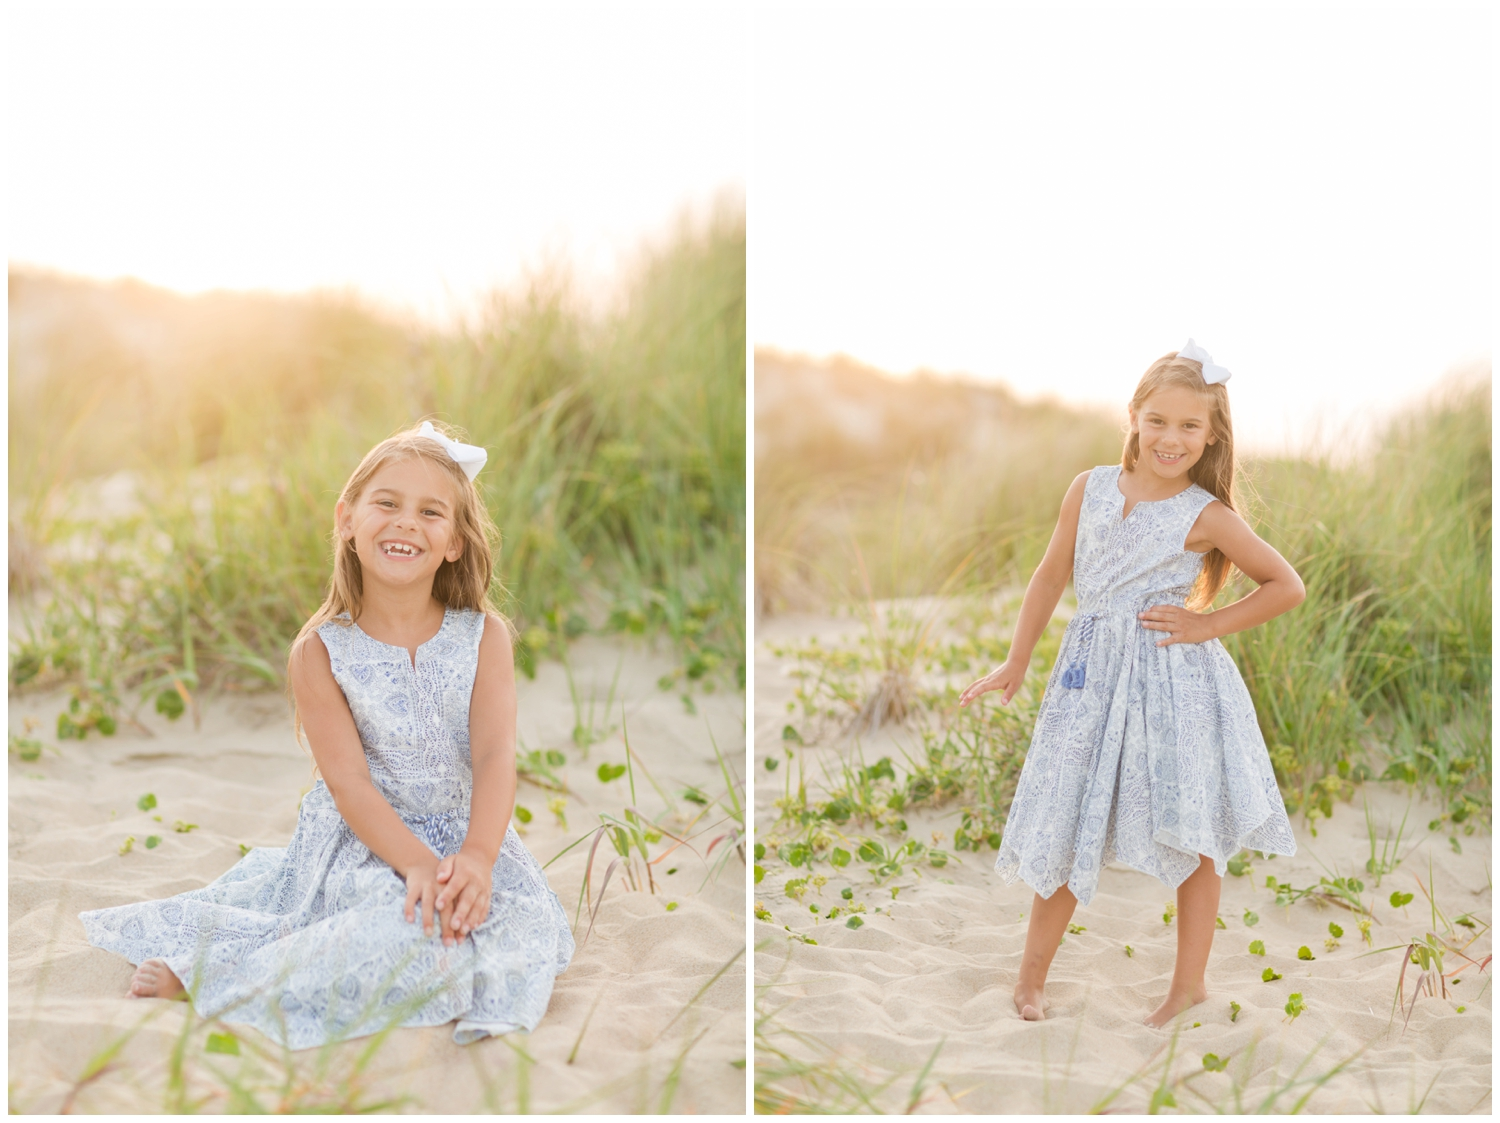 elovephotos virginia beach sandbridge family photographer_0894.jpg